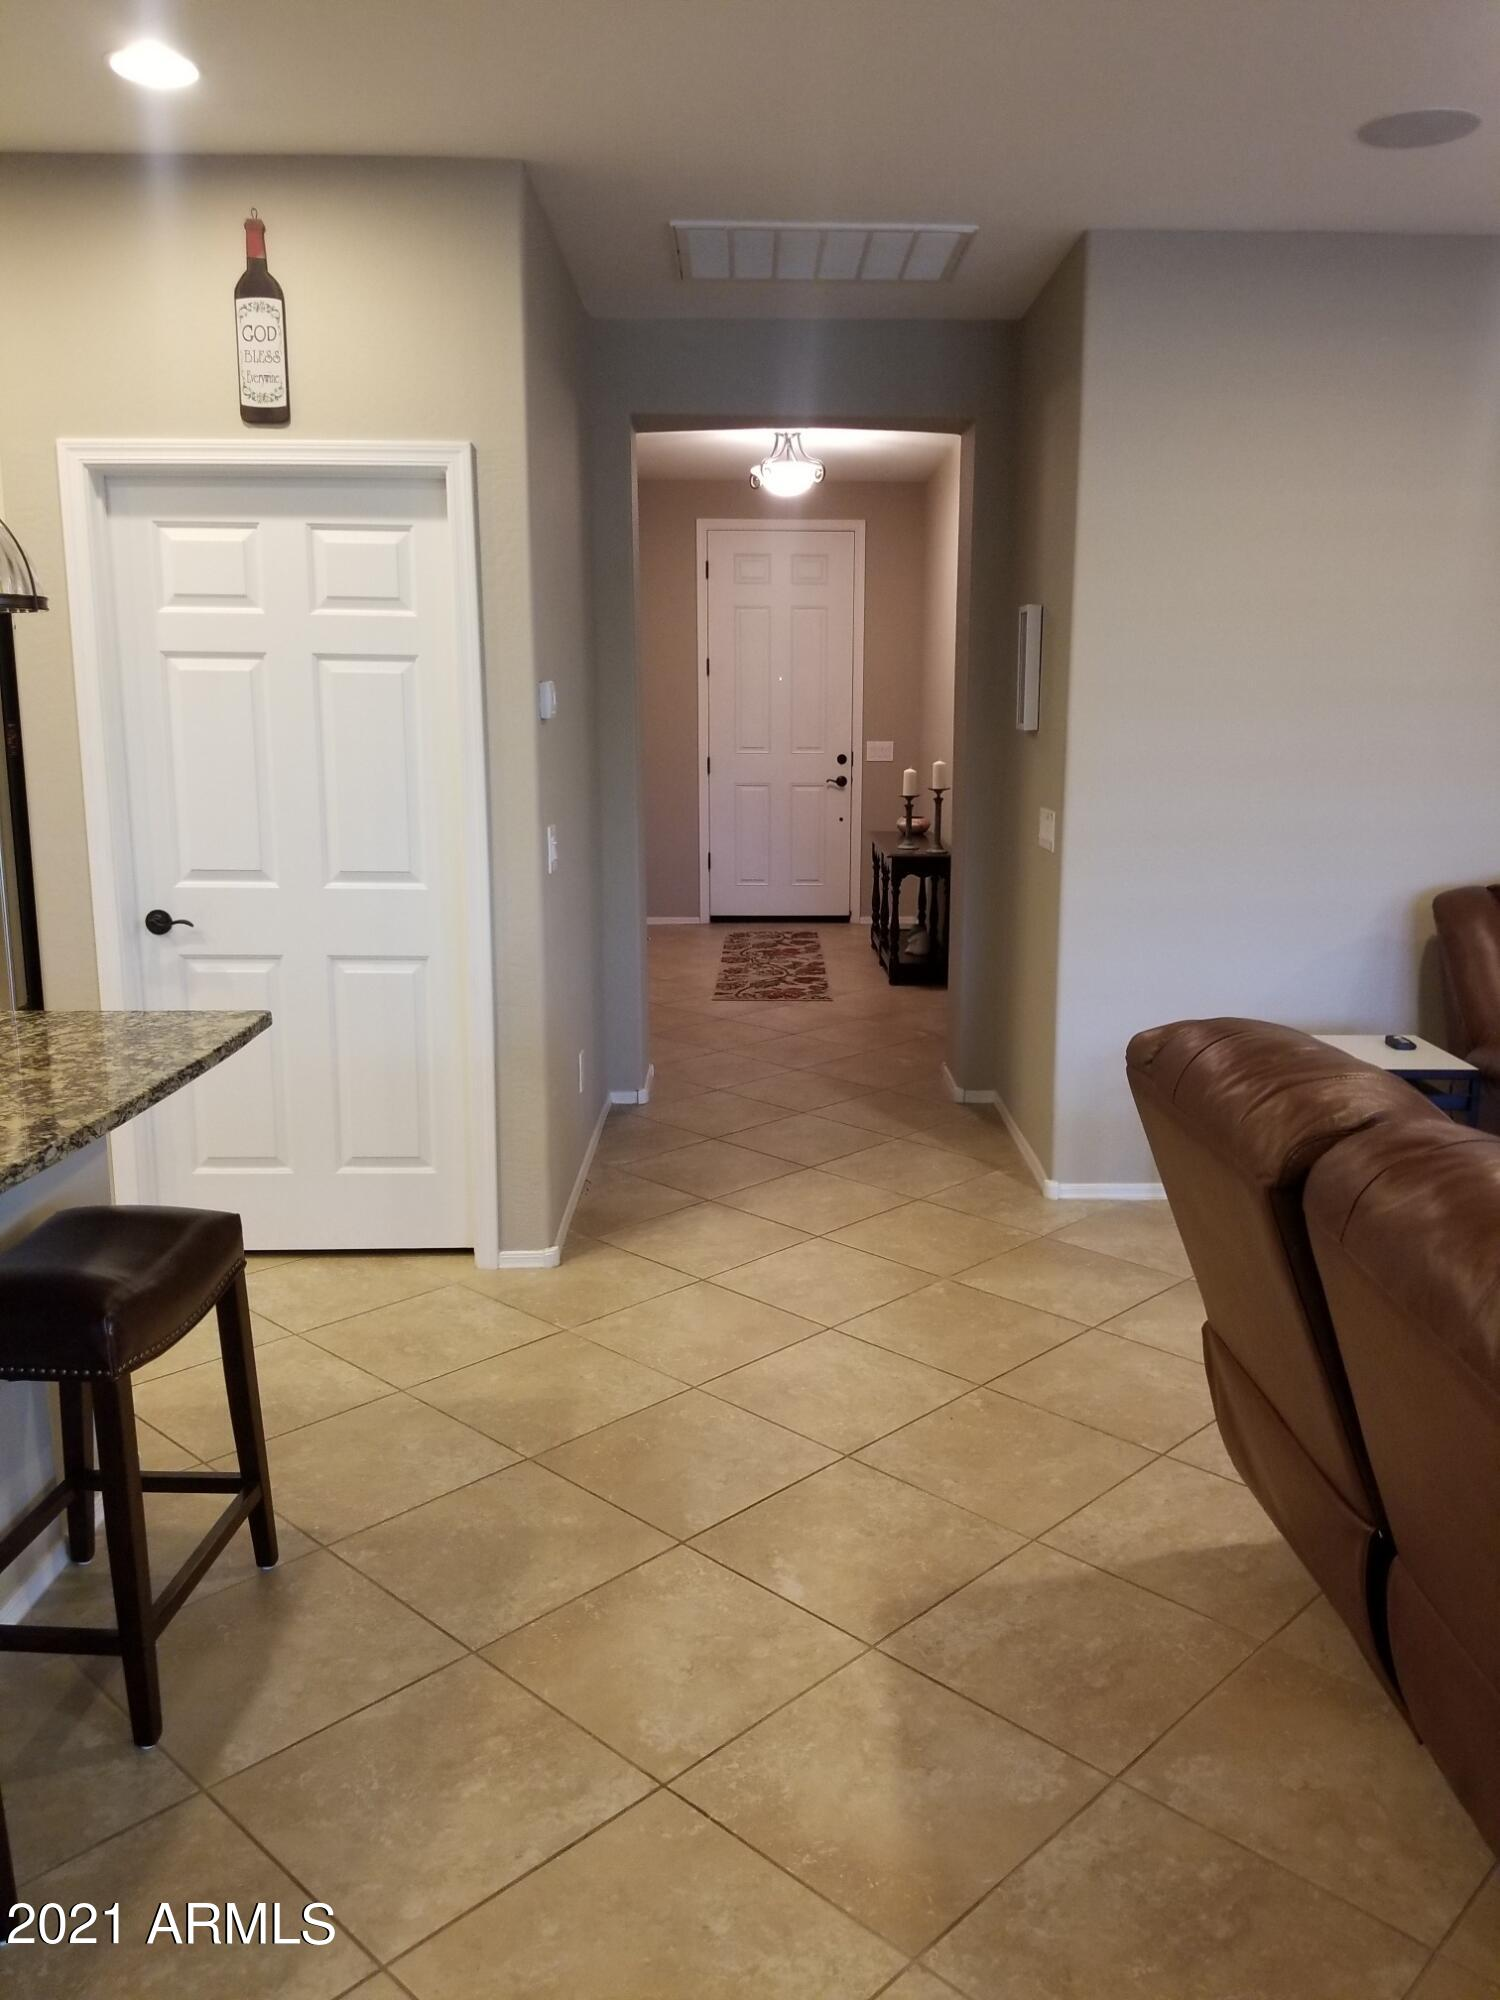 26881 W Utopia Road, Buckeye AZ 85396 - Photo 2